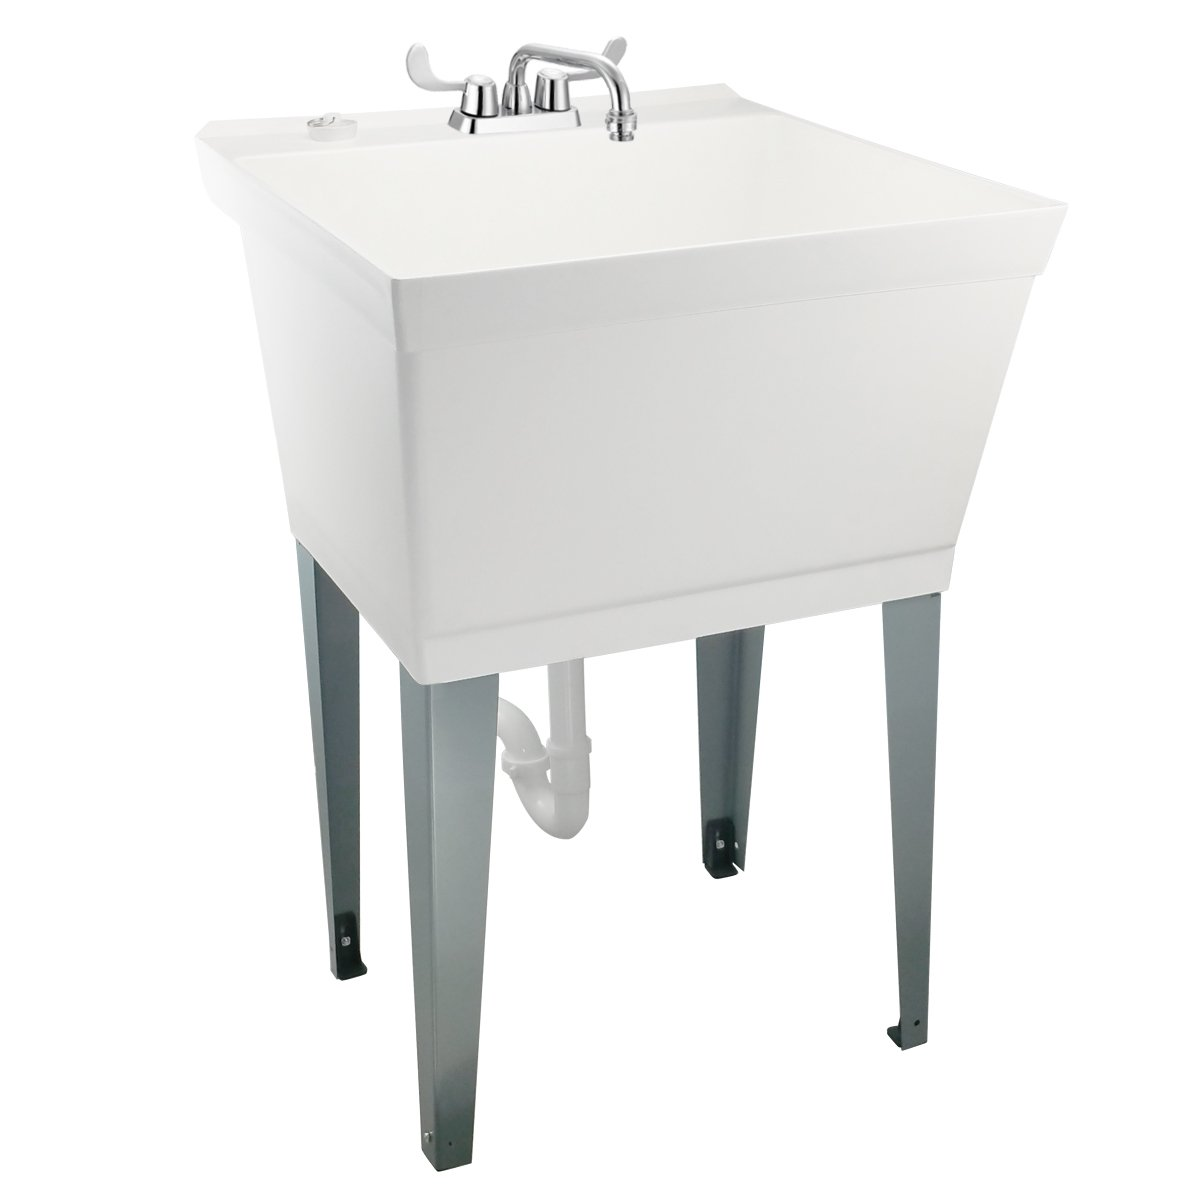 19-Gallon Laundry Utility Tub by MAYA | Heavy Duty Faucet with Winged Handles, Bonus Vacuum Breaker, Adjustable Metal Legs, Complete Installation Set Includes Supply Lines and Piping